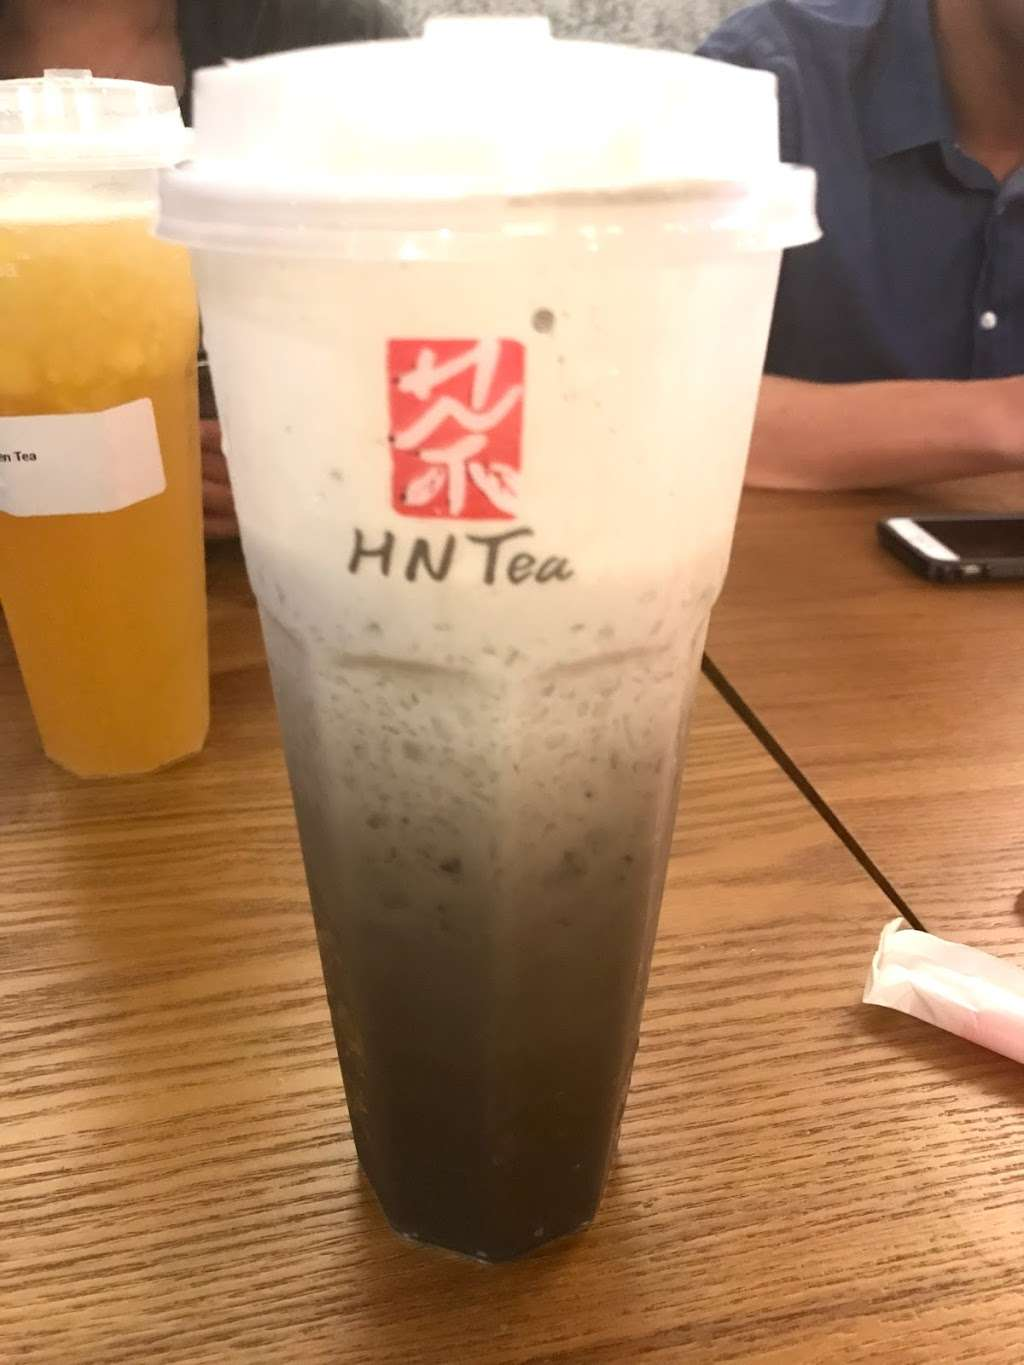 HNTea - Organic Tea House - cafe  | Photo 3 of 10 | Address: 14001 Newport Ave #E, Tustin, CA 92780, USA | Phone: (657) 600-8556